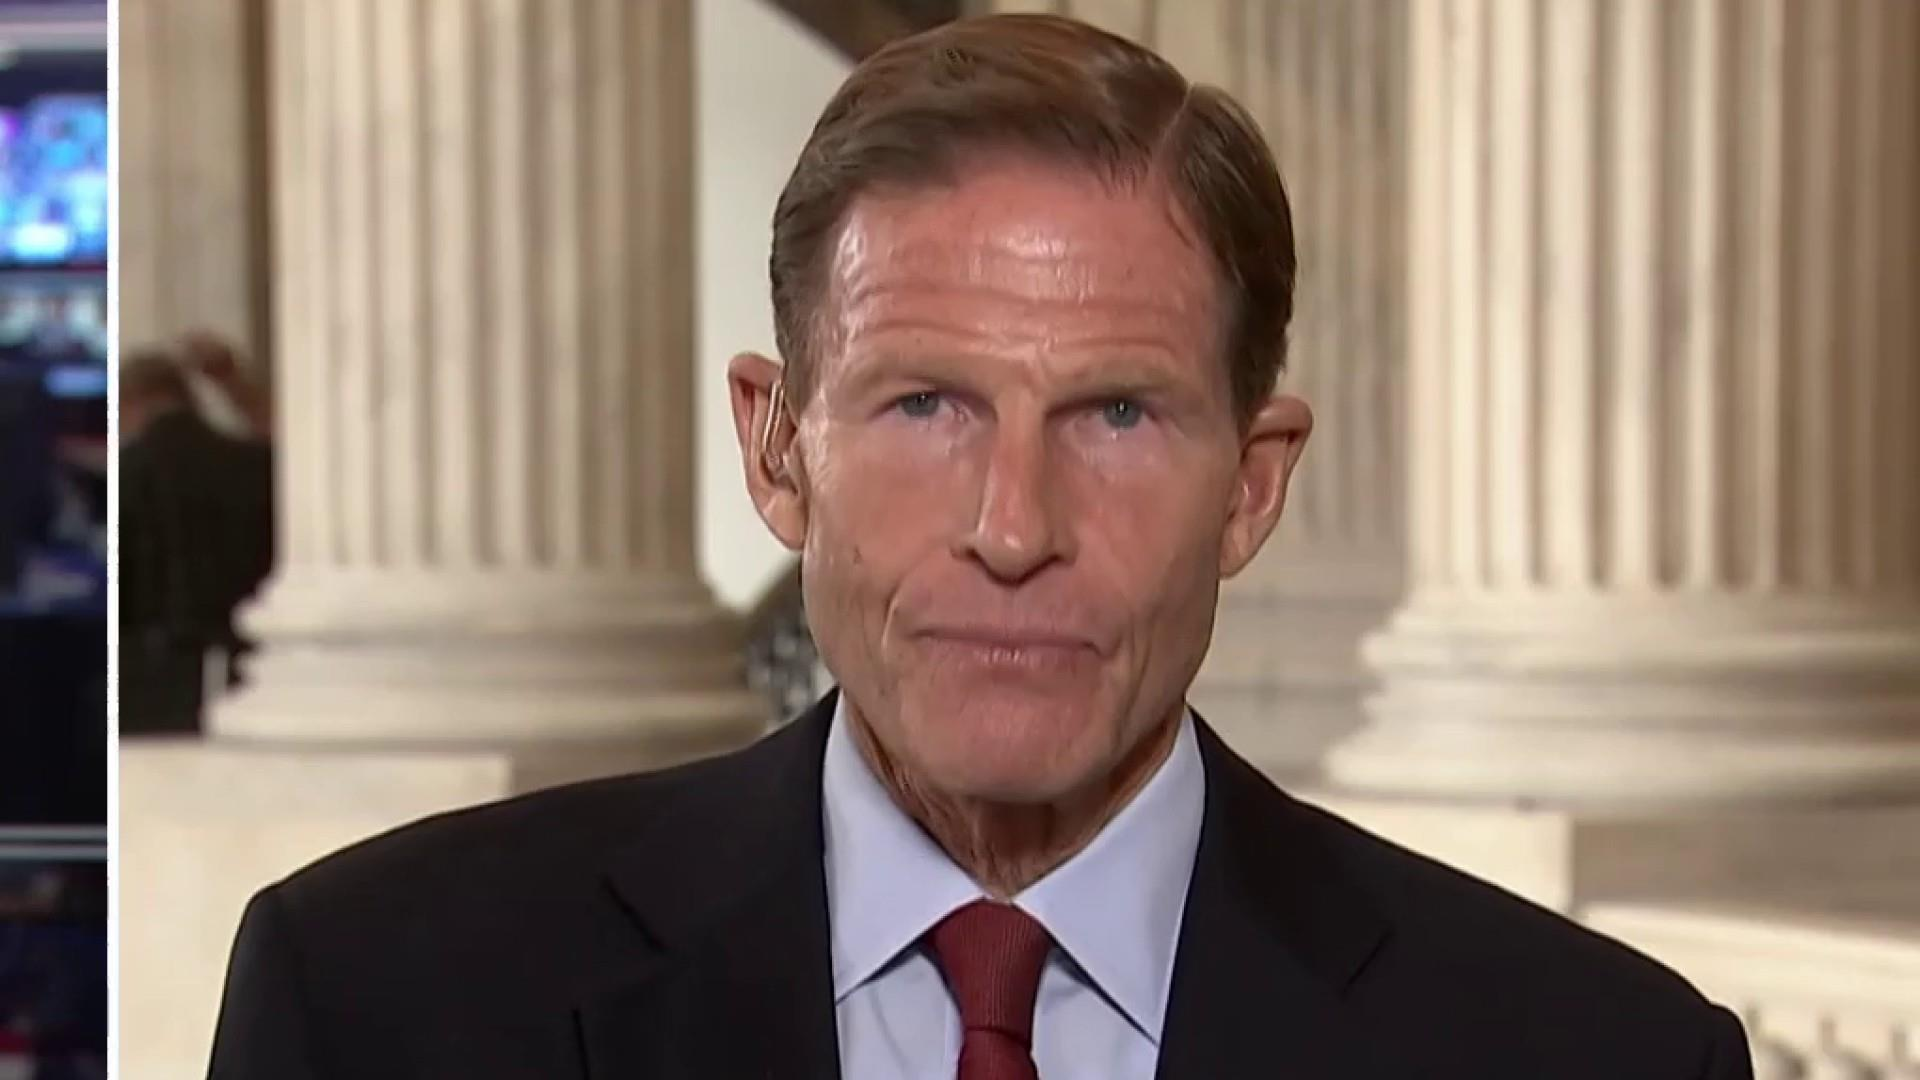 Sen. Blumenthal on Kavanaugh: 'Issues of credibility are central to his qualifications' for SCOTUS